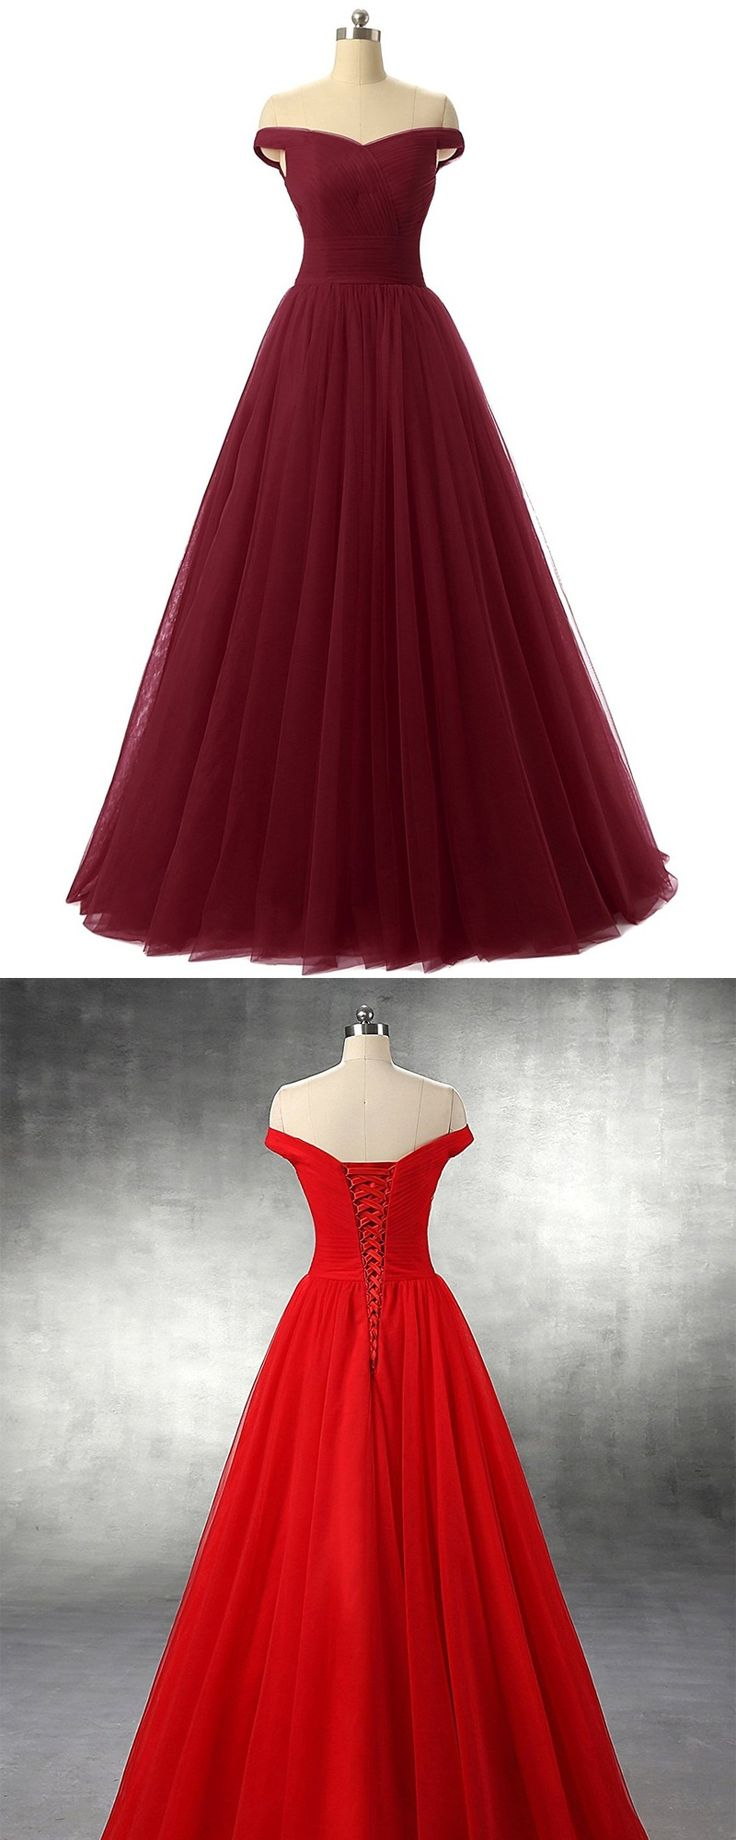 A-line Tulle Prom Formal Evening Dress,Sexy Burgundy Prom Dresses,Prom Dress,Off Shoulder Prom Dress, Homecoming Dress 2017,Ball Gown Prom Dress